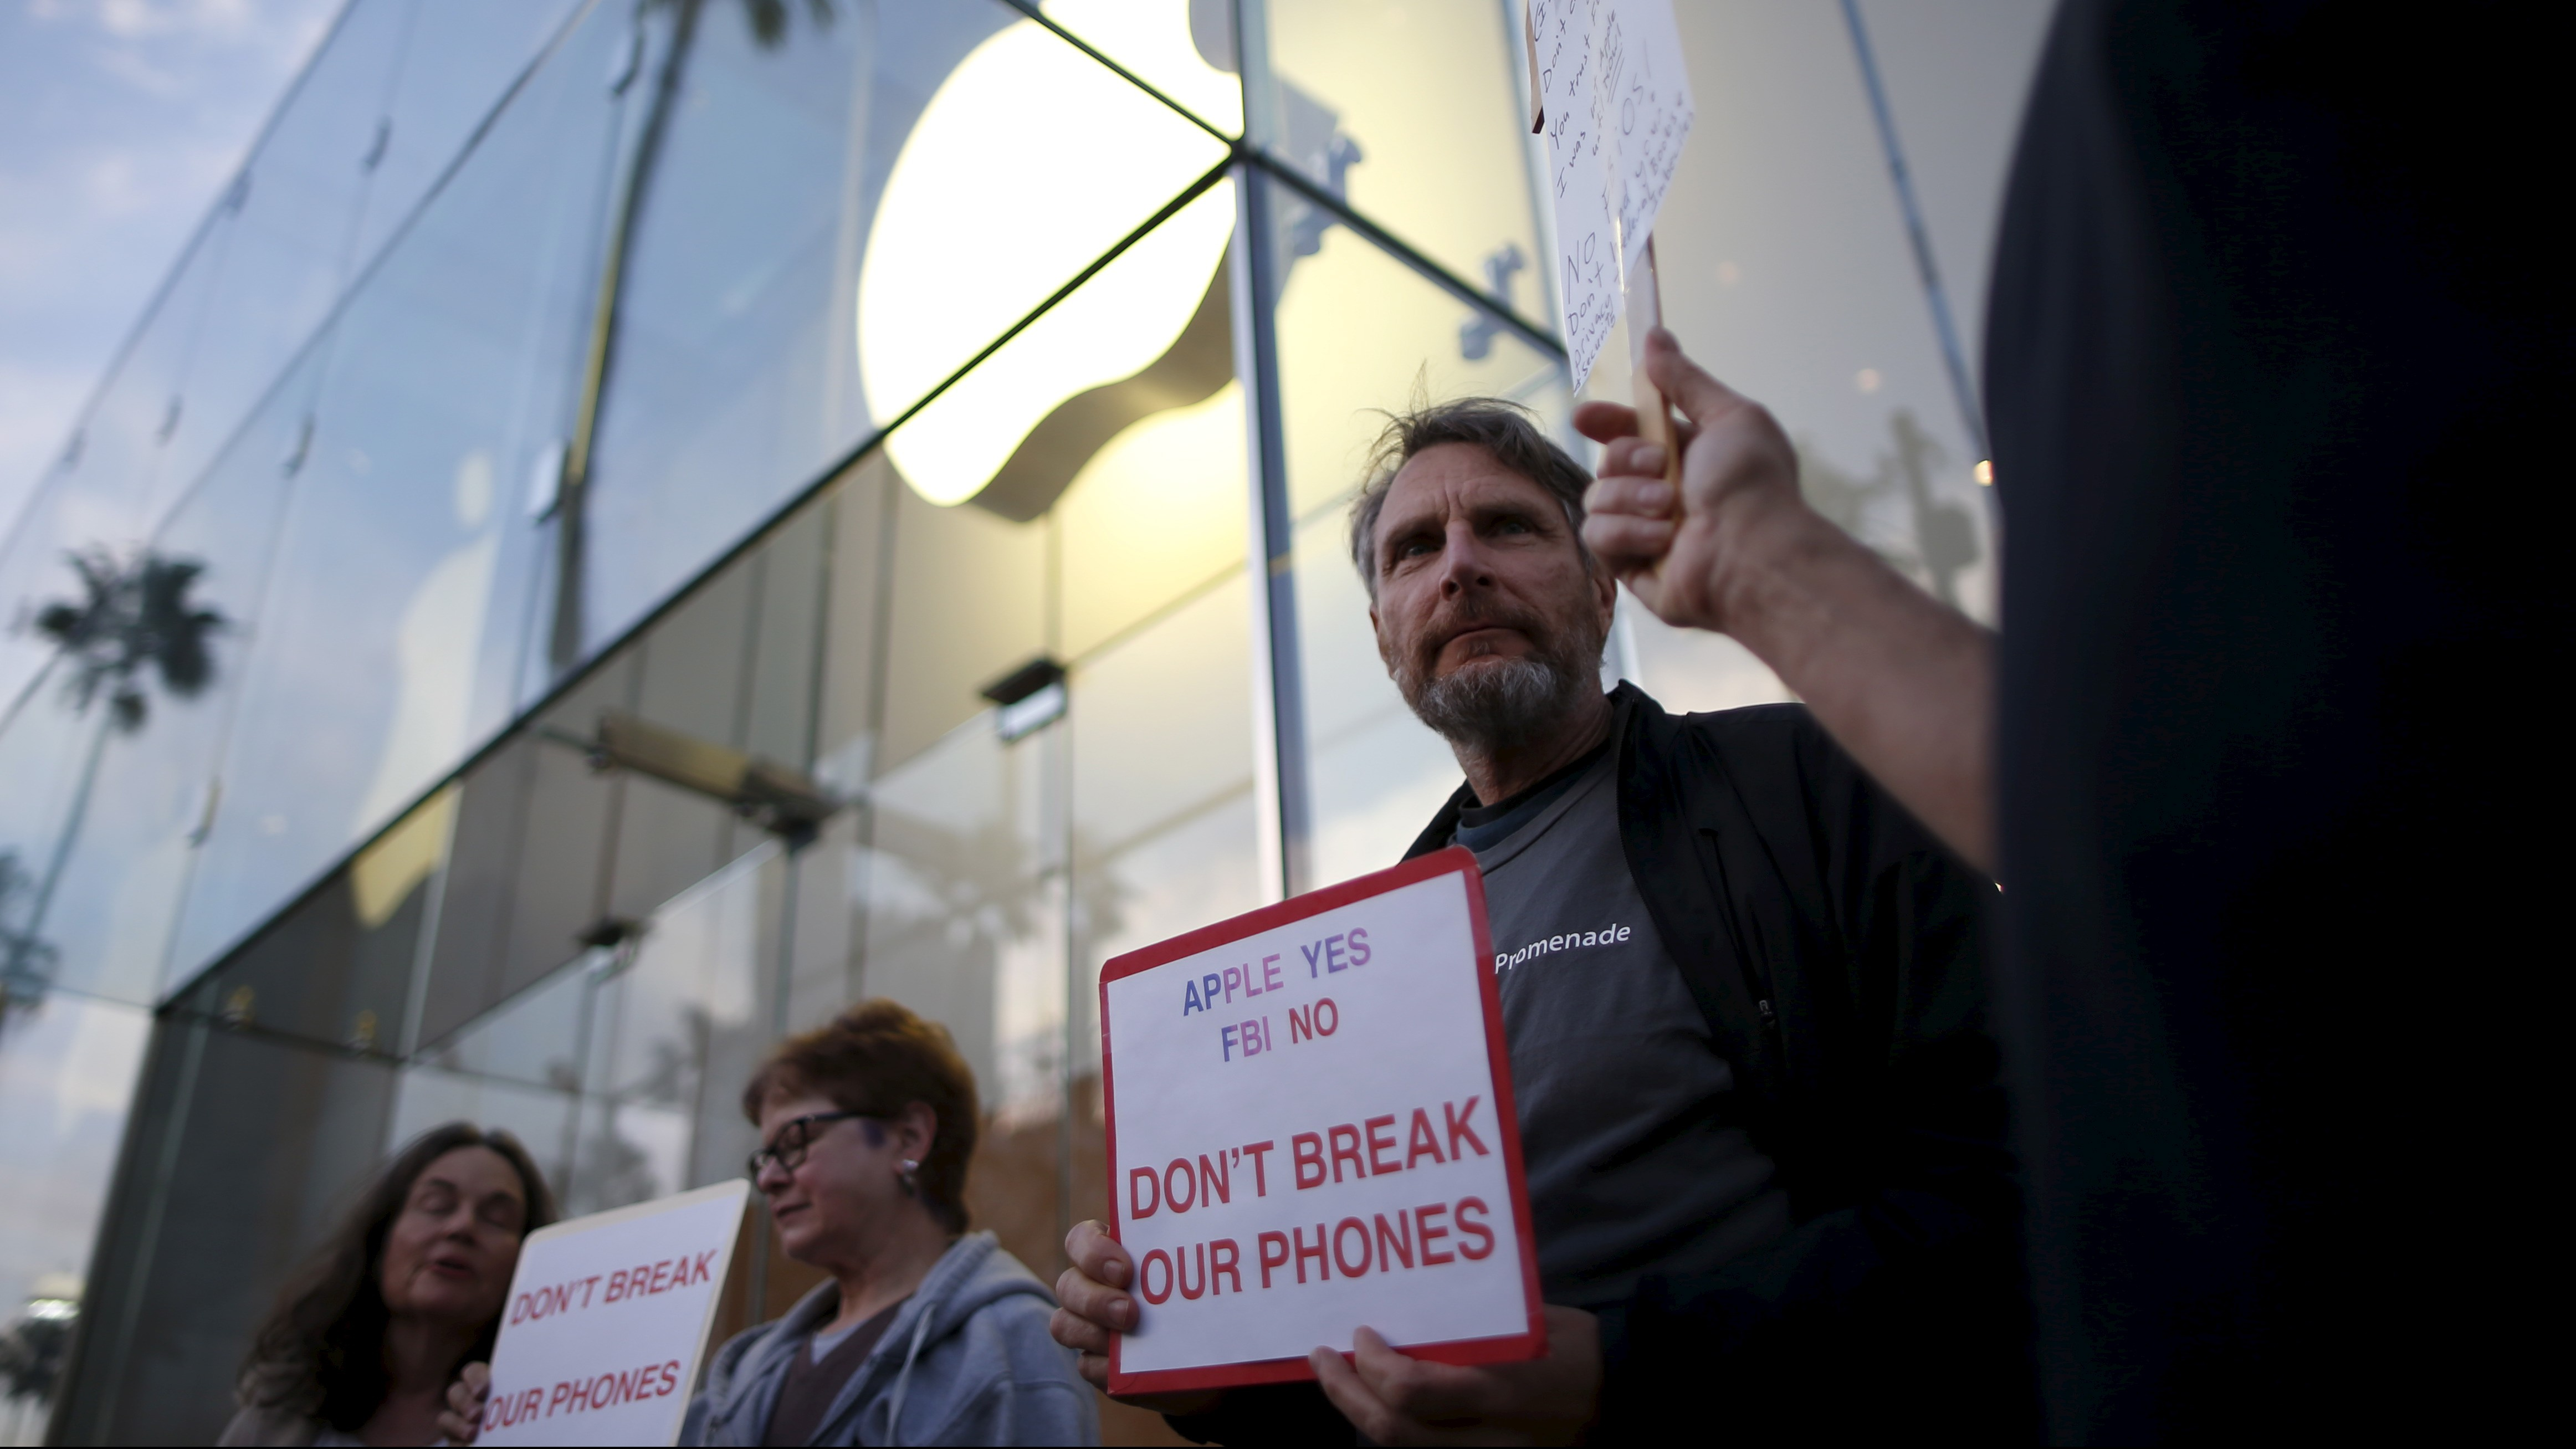 People gather at a small rally in support of Apple's refusal to help the FBI access the cell phone of a gunman involved in the killings of 14 people in San Bernardino, in Santa Monica, California, United States, February 23, 2016.